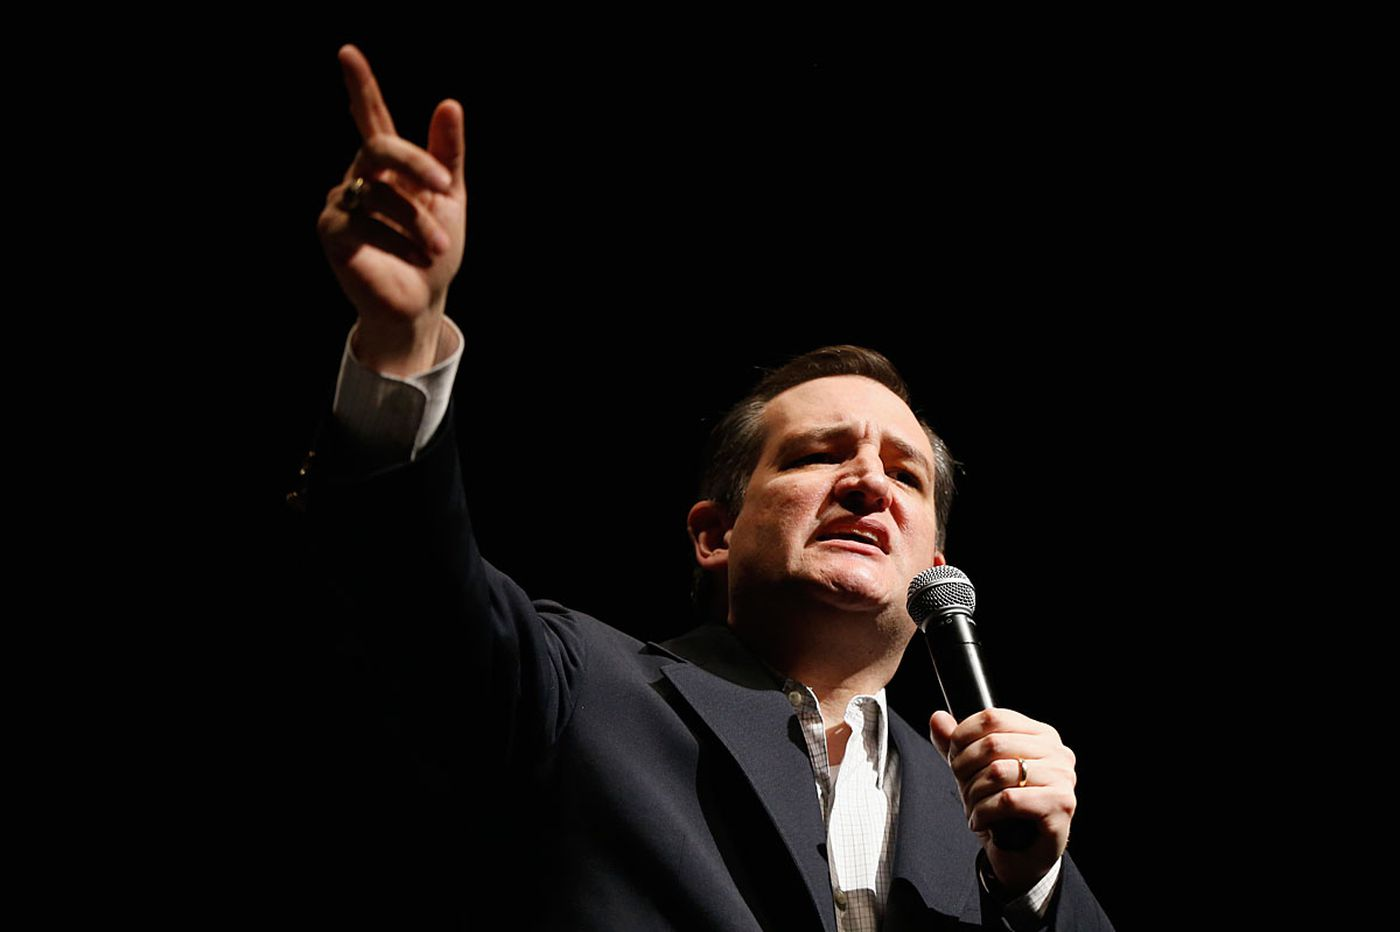 N.J. judge hears two challenges to Cruz eligibility